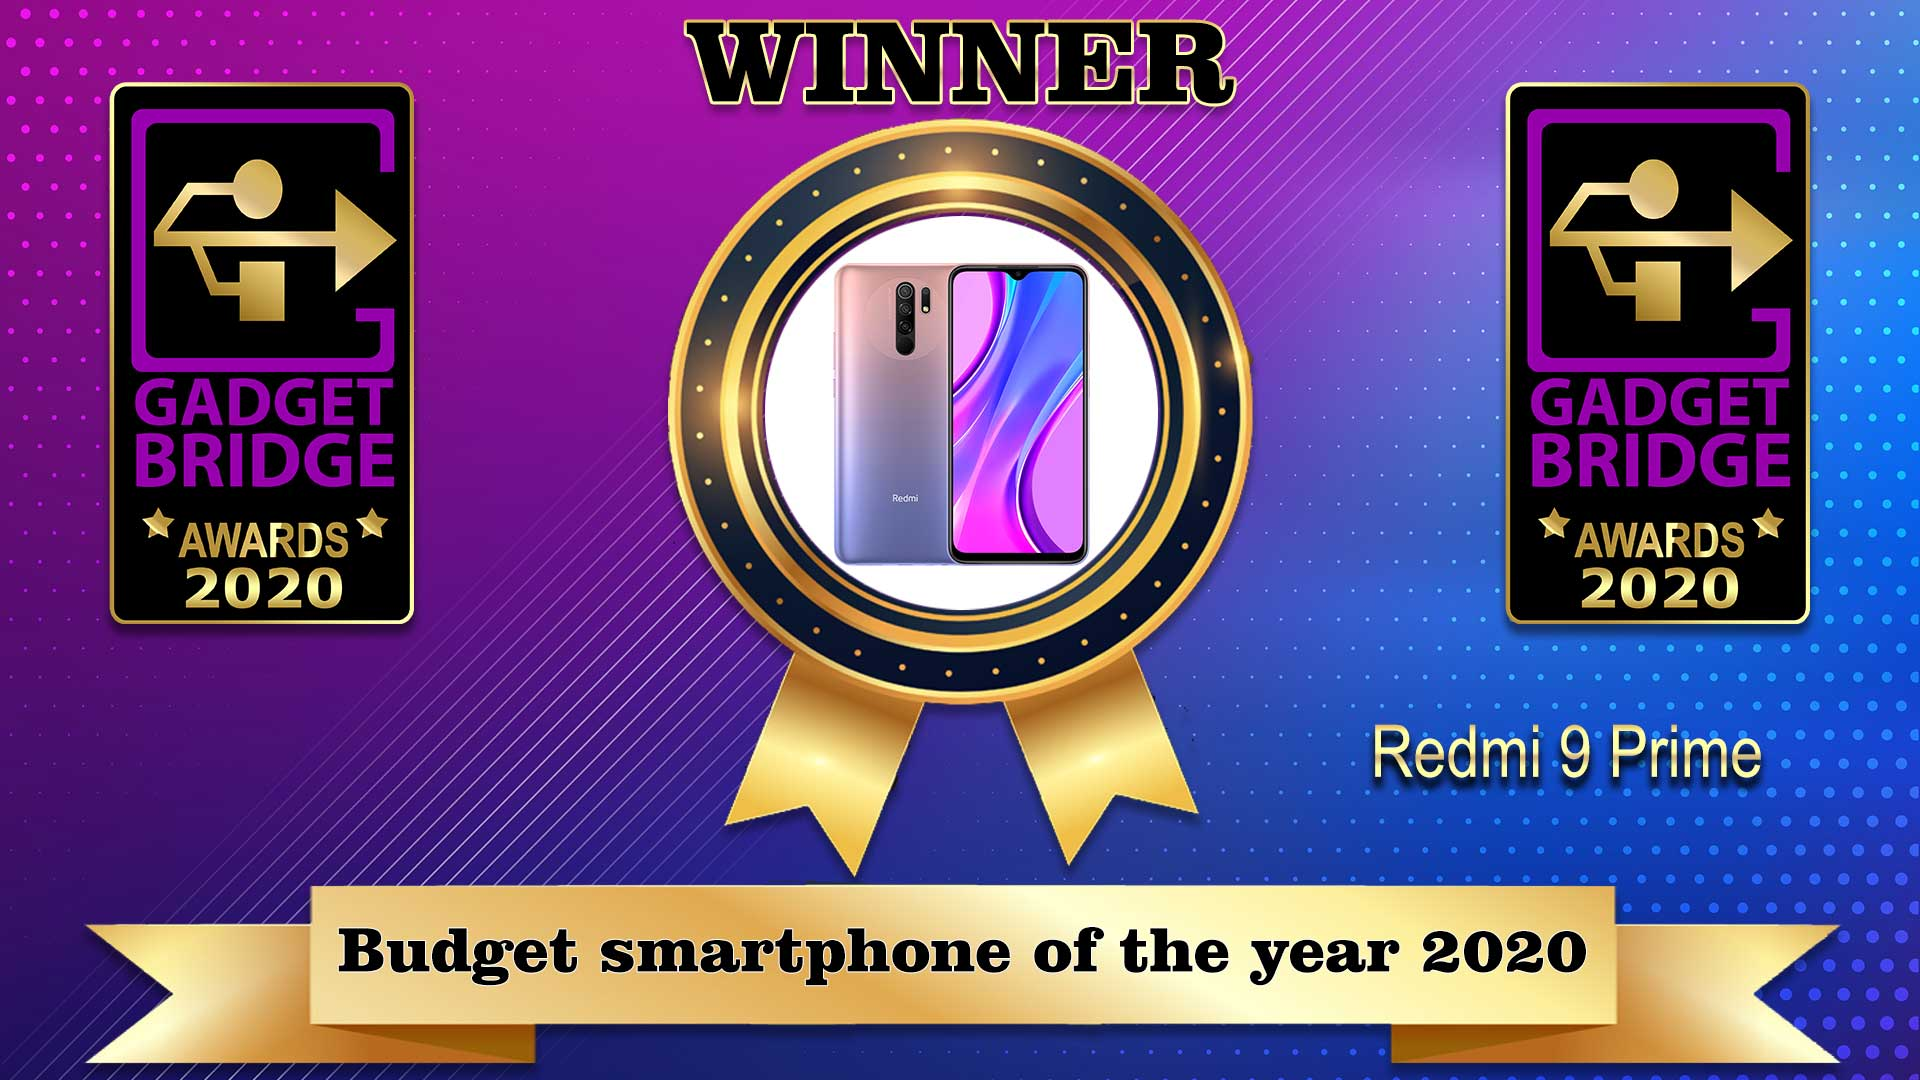 Budget-smartphone-of-the-year-2020